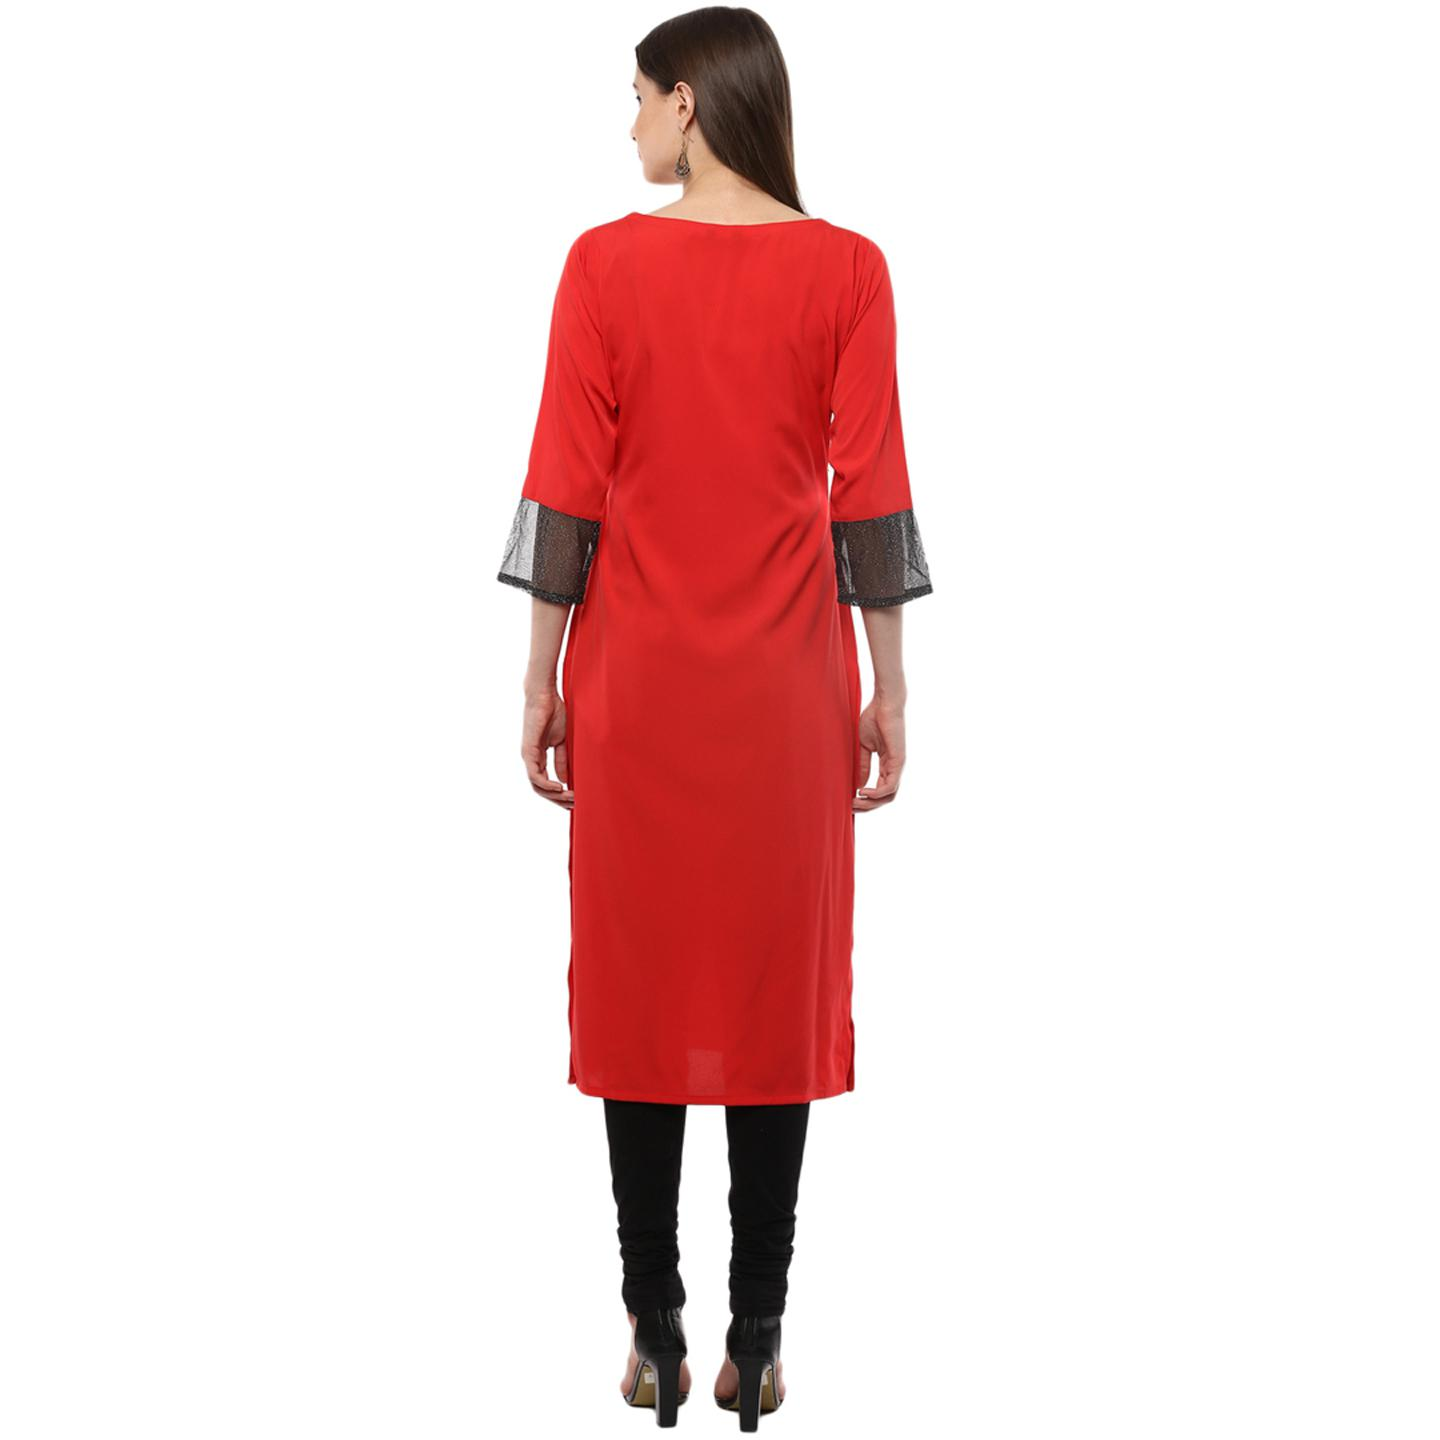 Ahalyaa - Women's Red Colored Casual Wear Solid Crepe Kurti